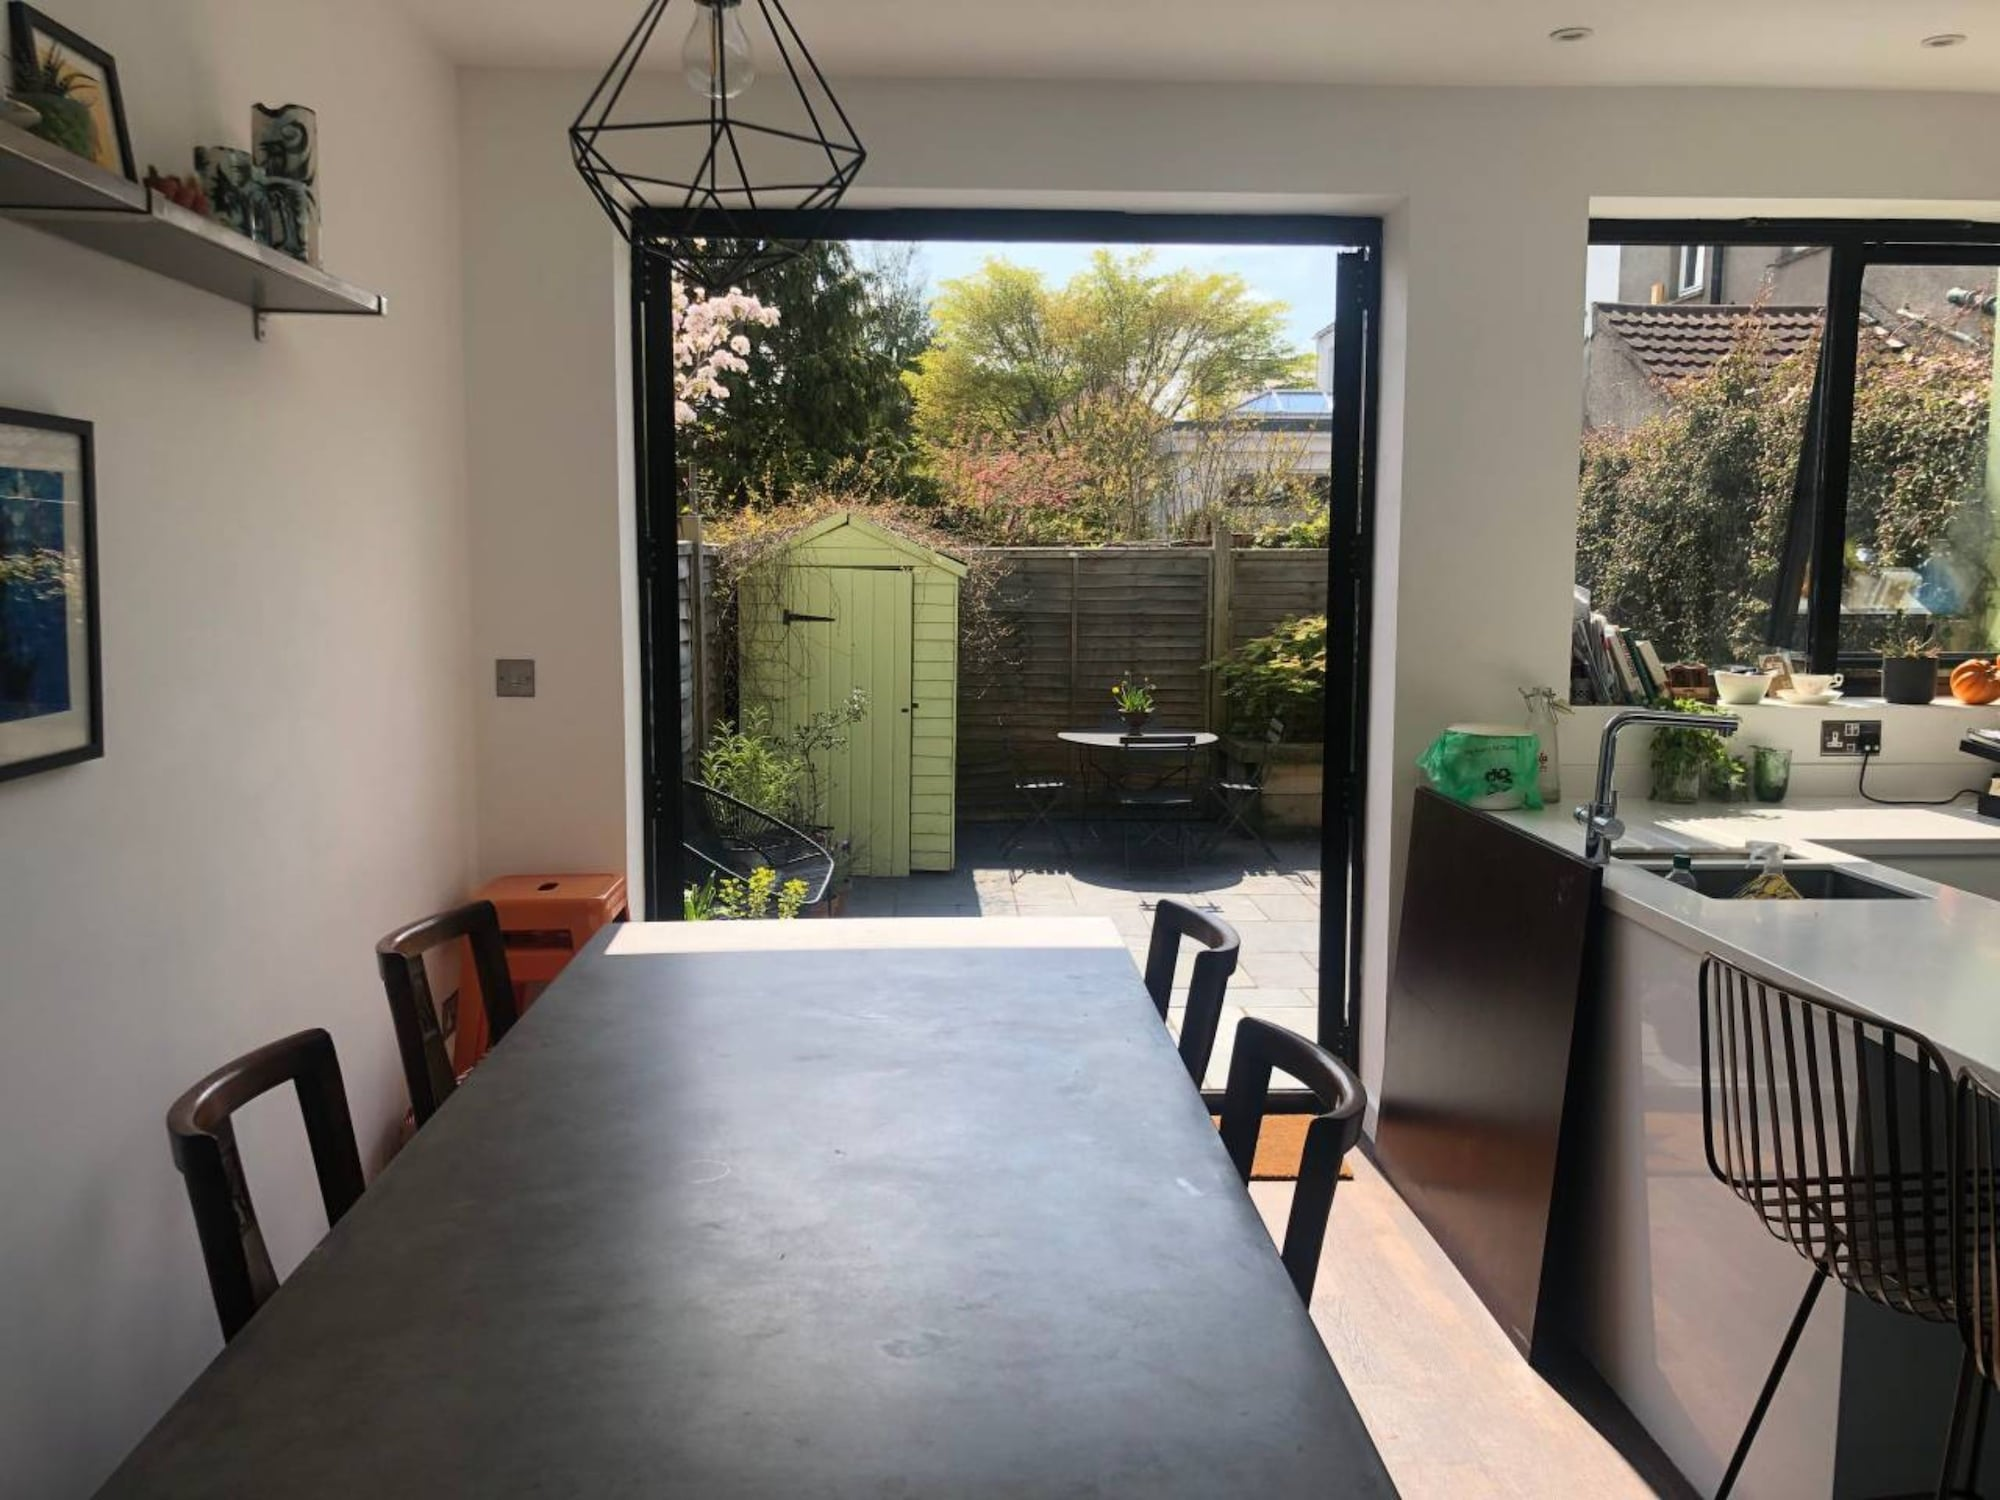 3 Bedroom Townhouse By Gloucester Road, Bristol